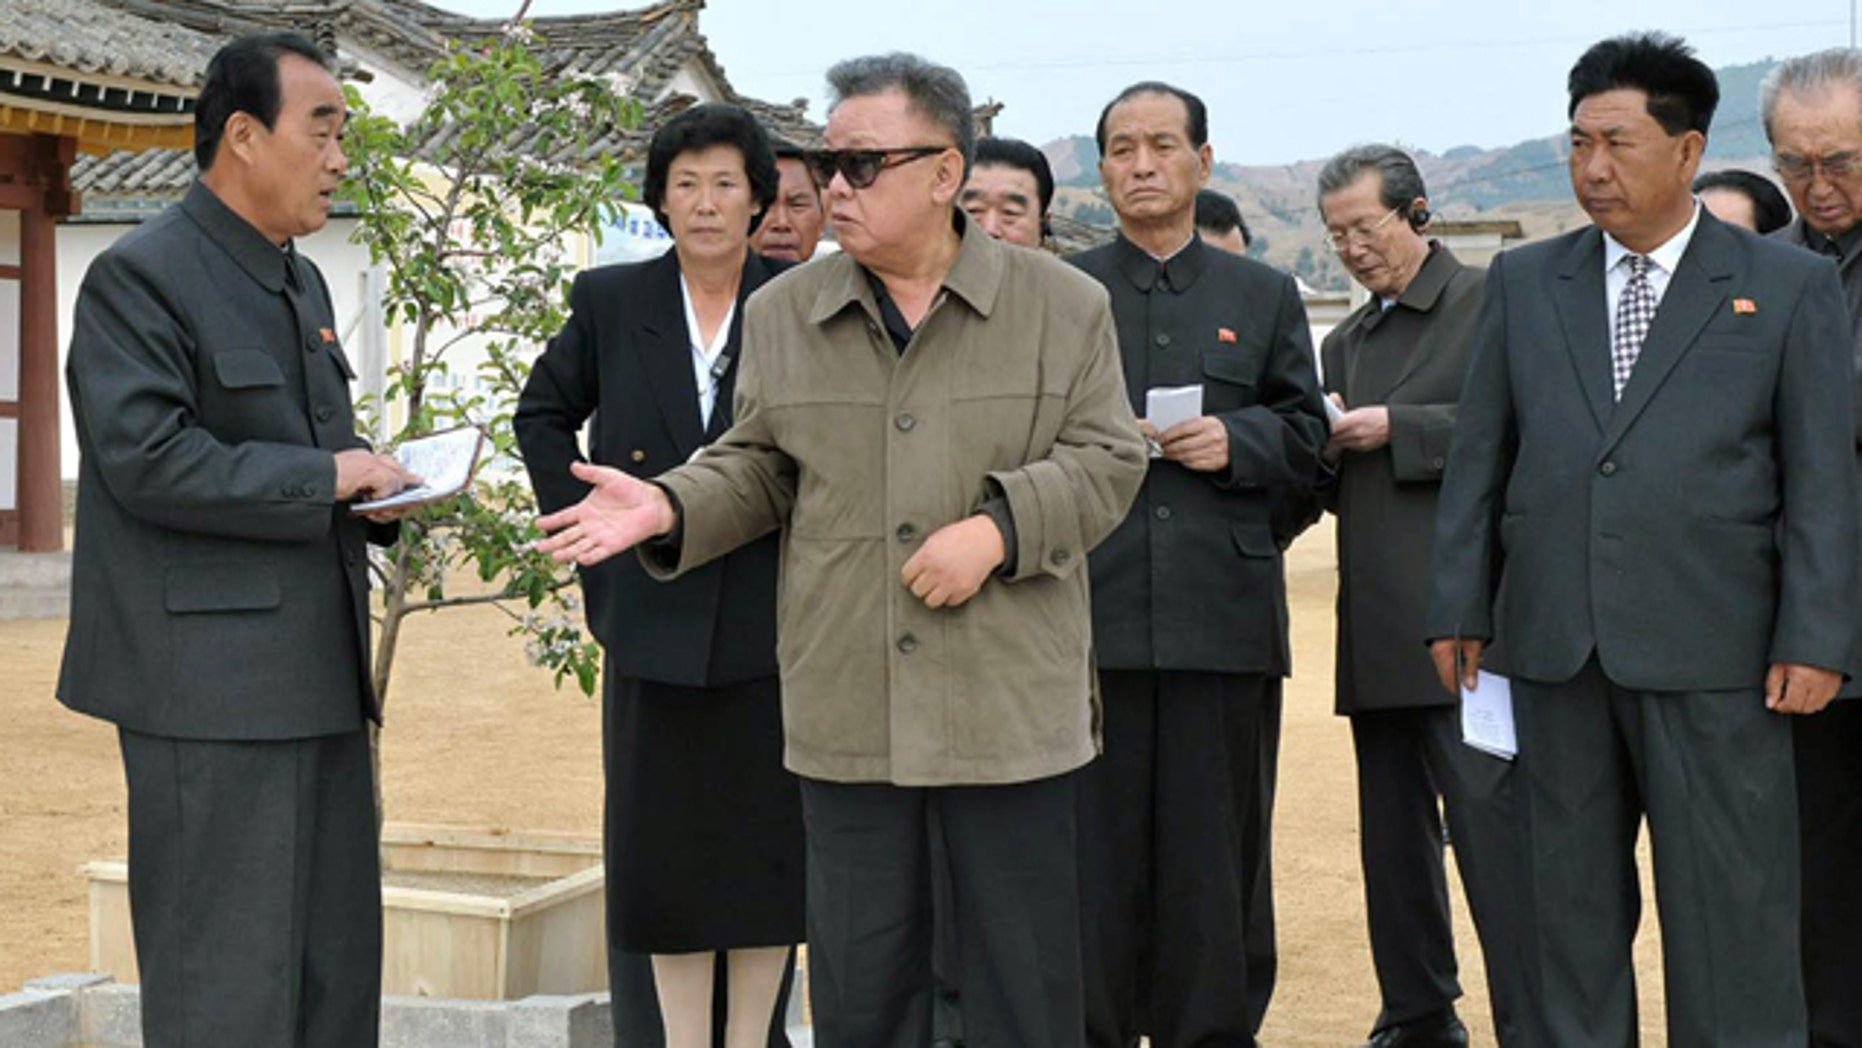 May 19: North Korean leader Kim Jong Il, center, inspects the Toksong fruit farm in South Hamgyong Province, North Korea.